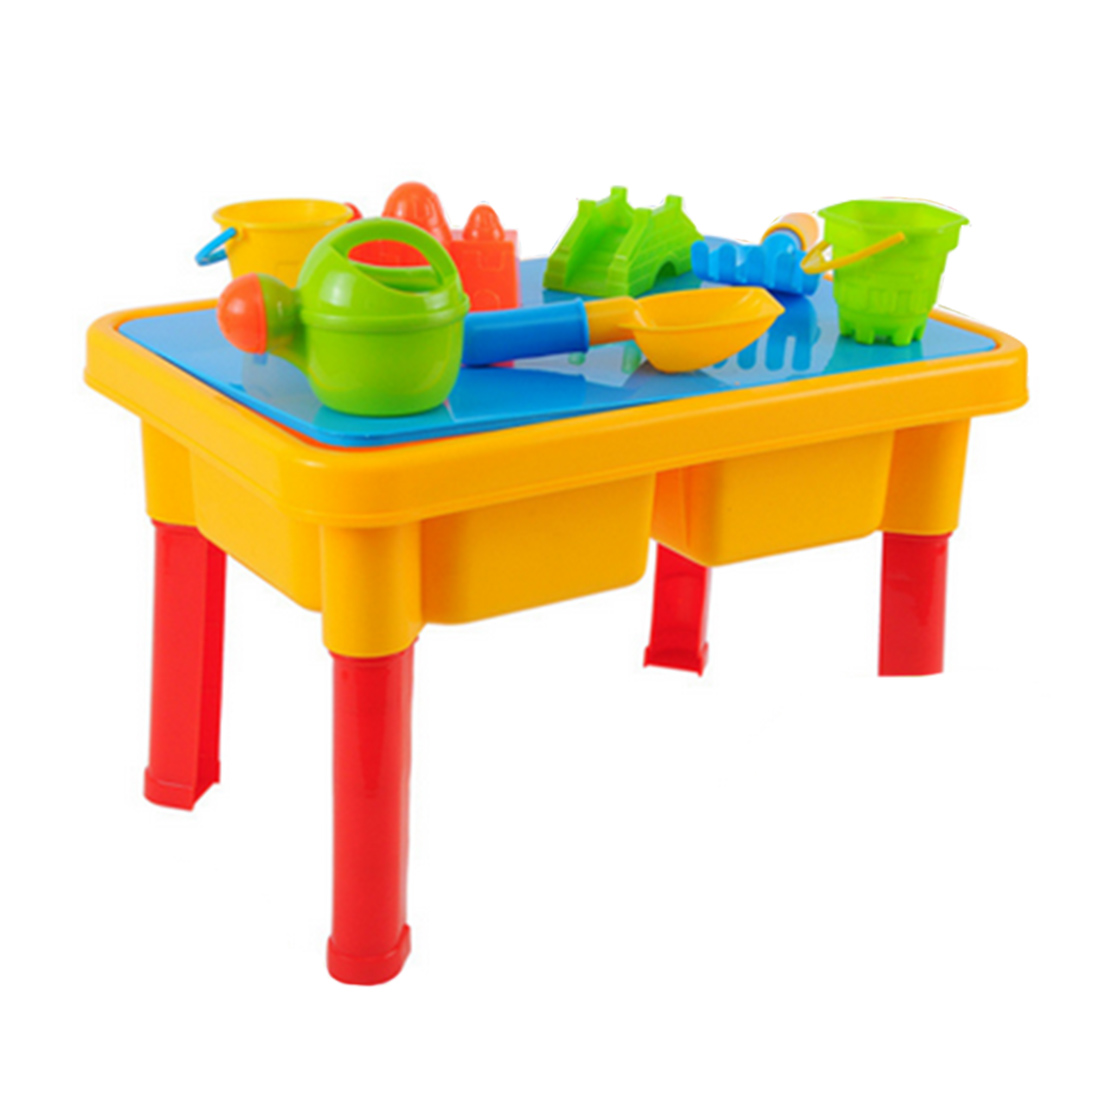 все цены на 15-In-1 Beach Table Toy Set ABS Outdoor Beach Sand Play Toys For Children Gifts онлайн